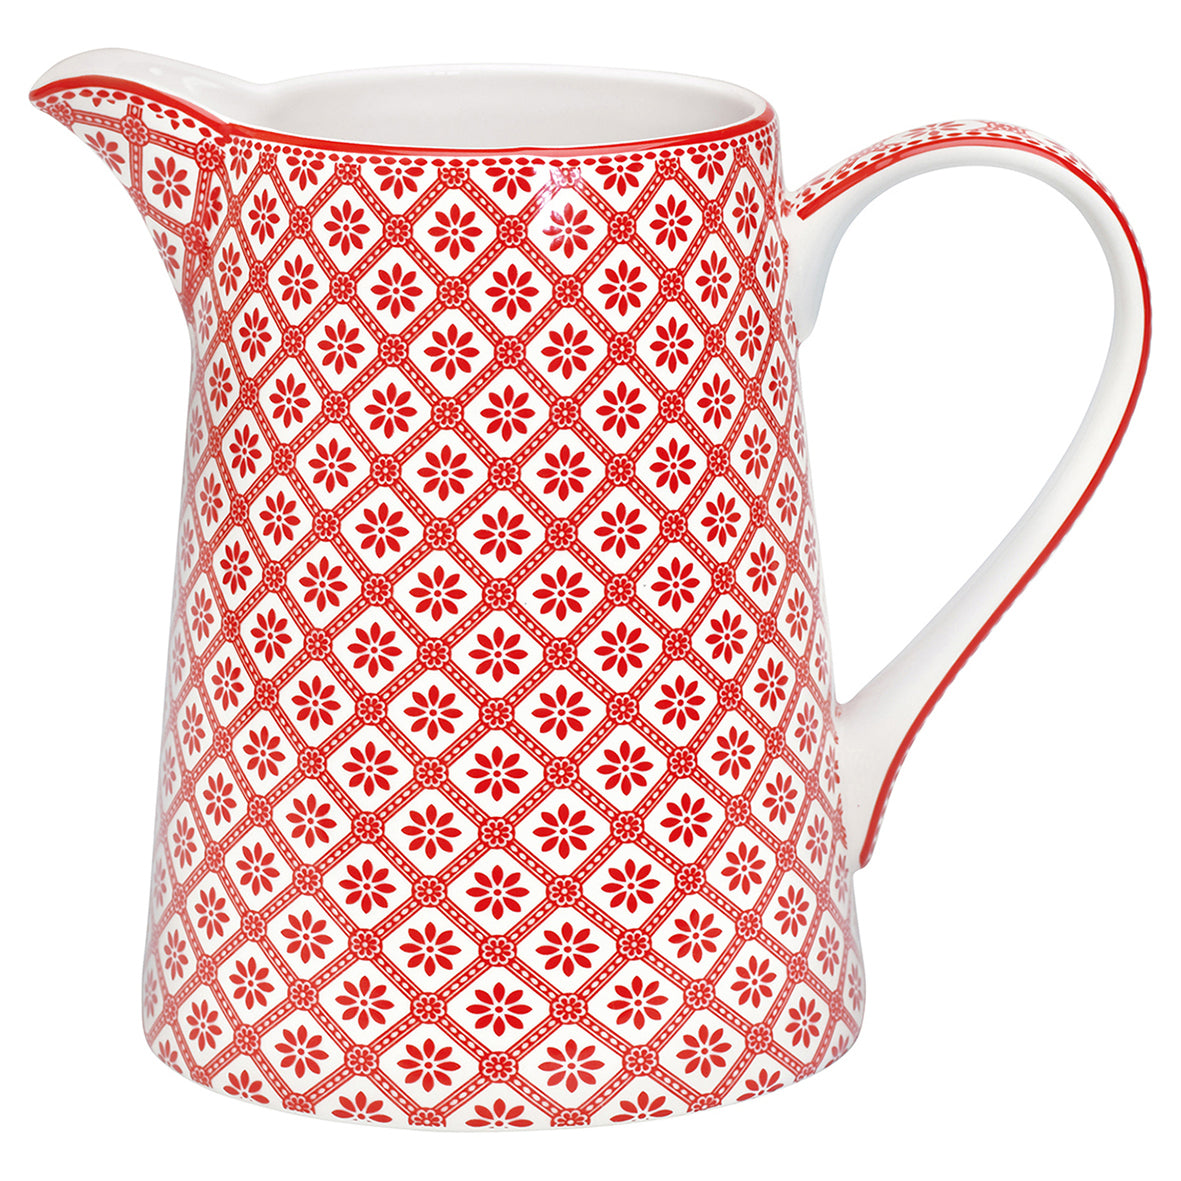 Greengate Jug 1Lt. Bianca Red